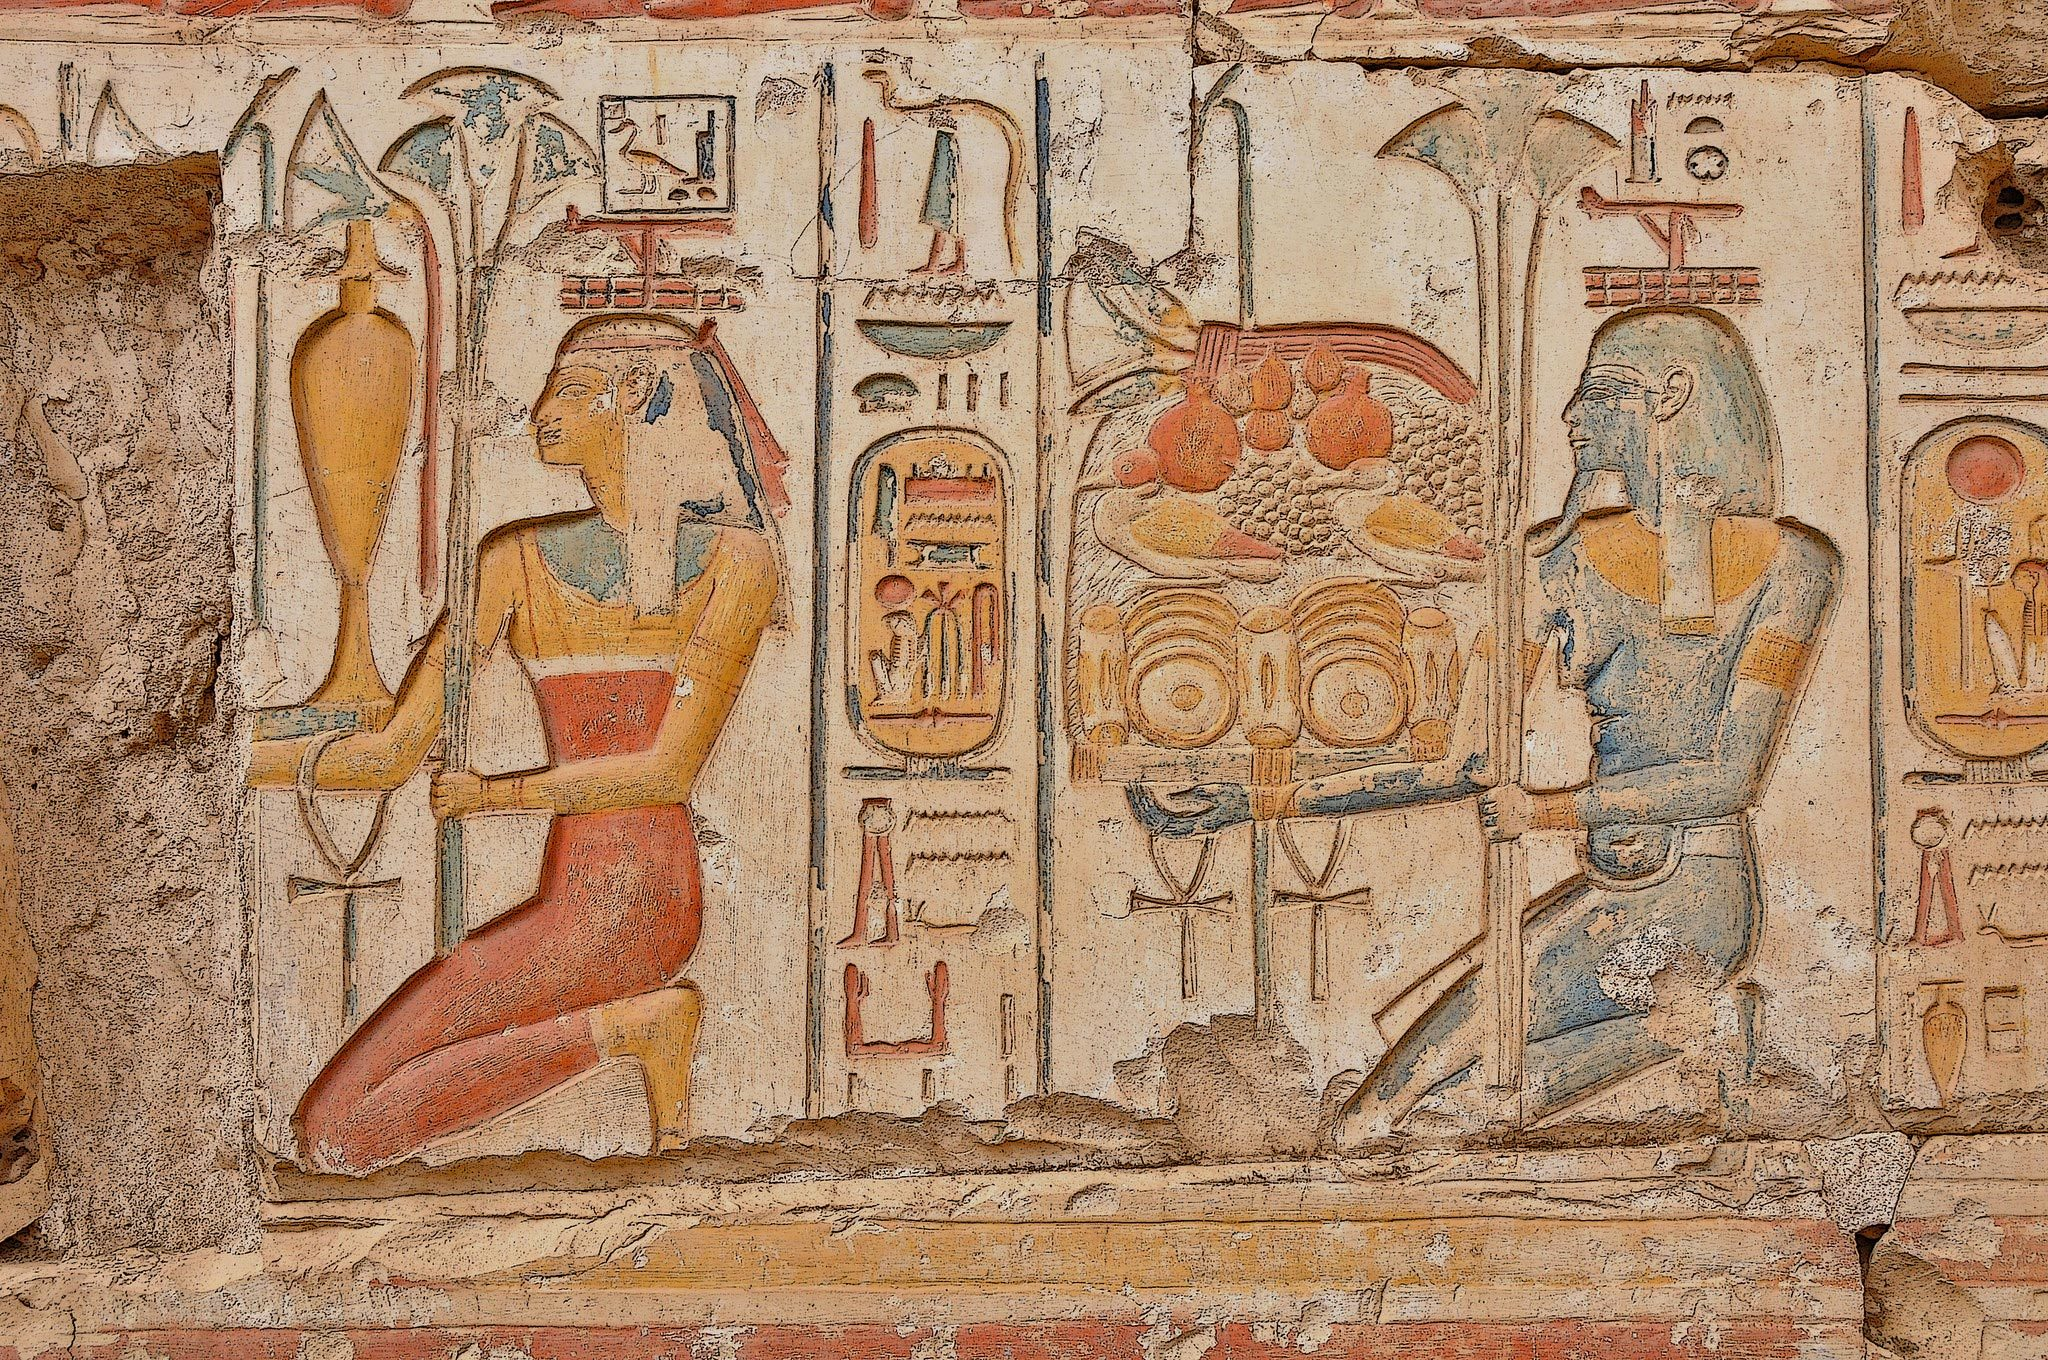 Egyptian wall carvings hd wallpaper background image